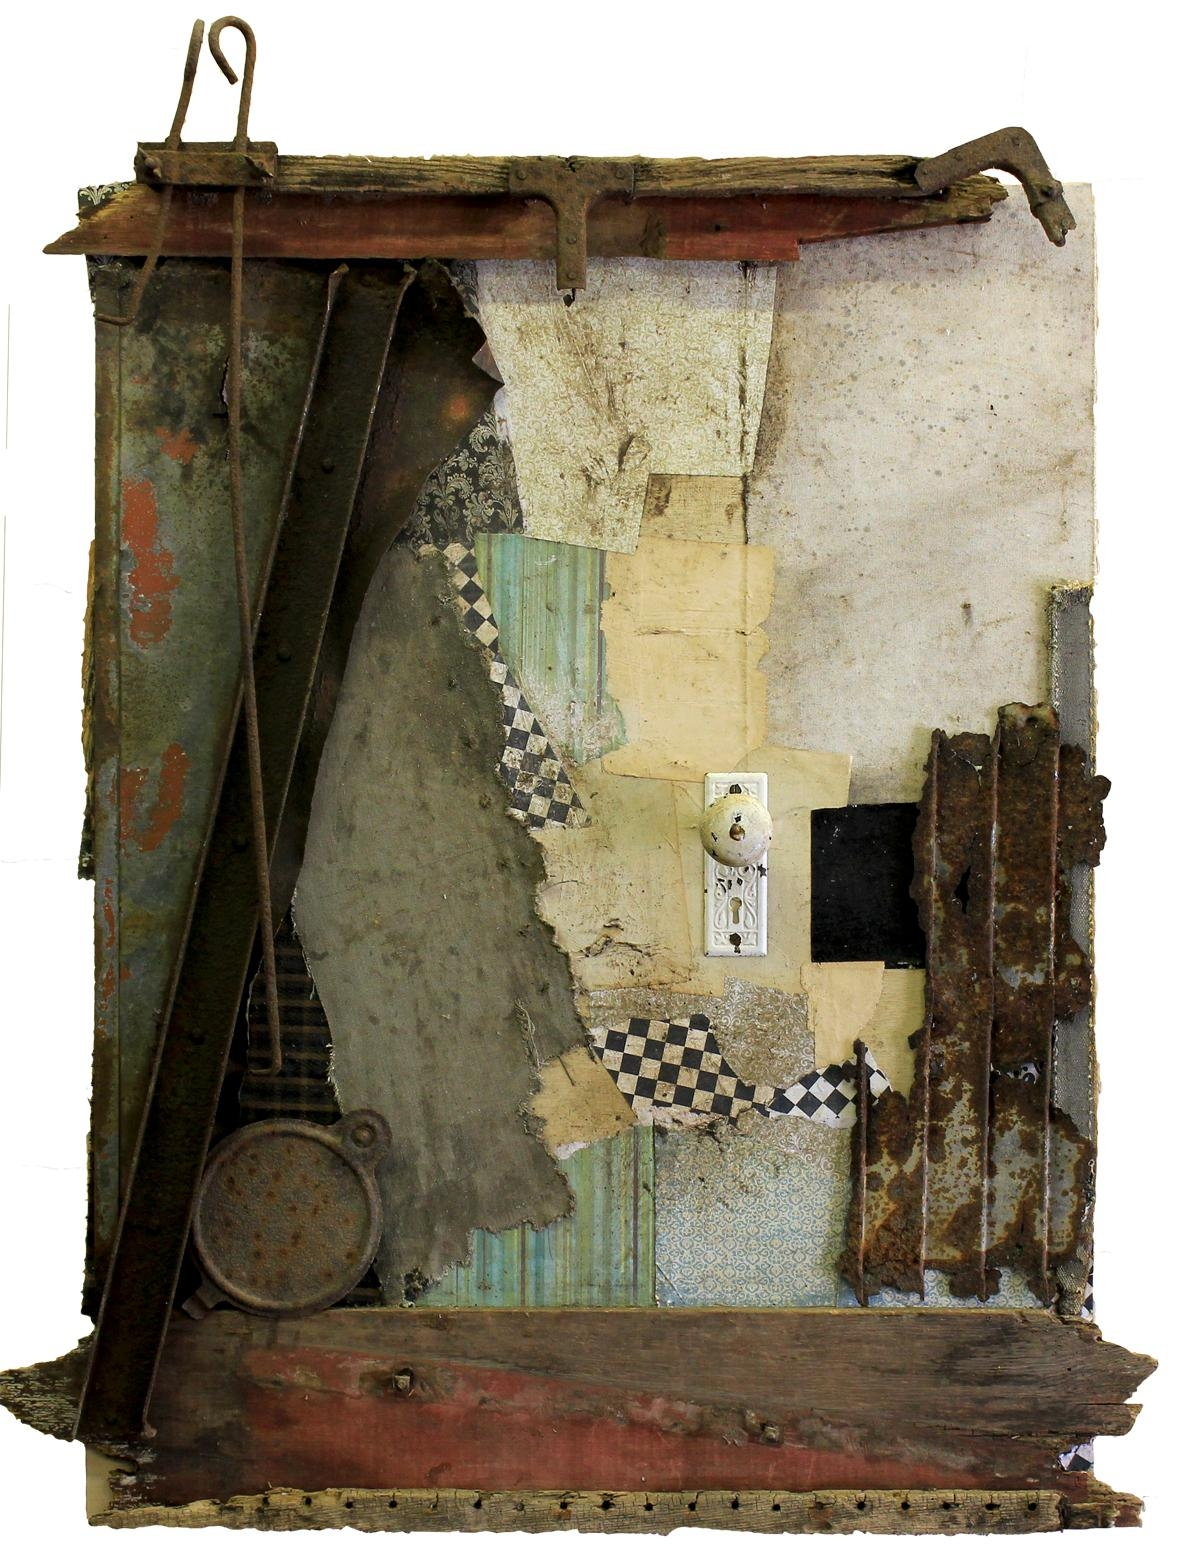 Original Mixed Media Vintage Industrial Art Assemblagemichel Pertaining To Vintage Industrial Wall Art (Image 16 of 20)